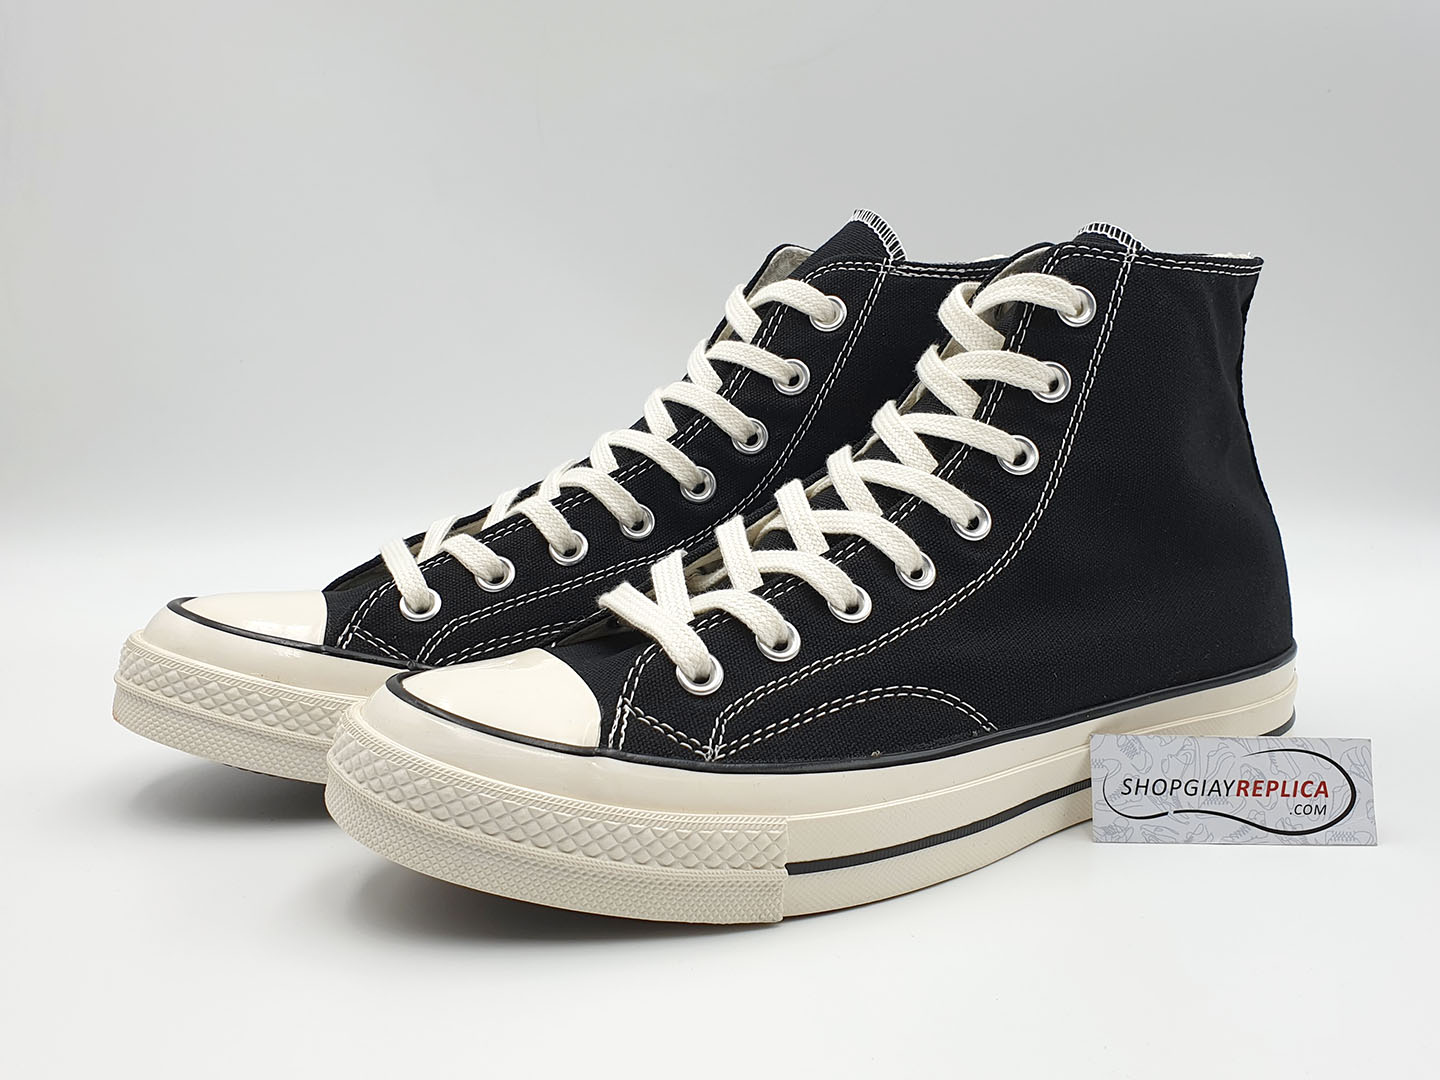 giày converse 1970s black high replica